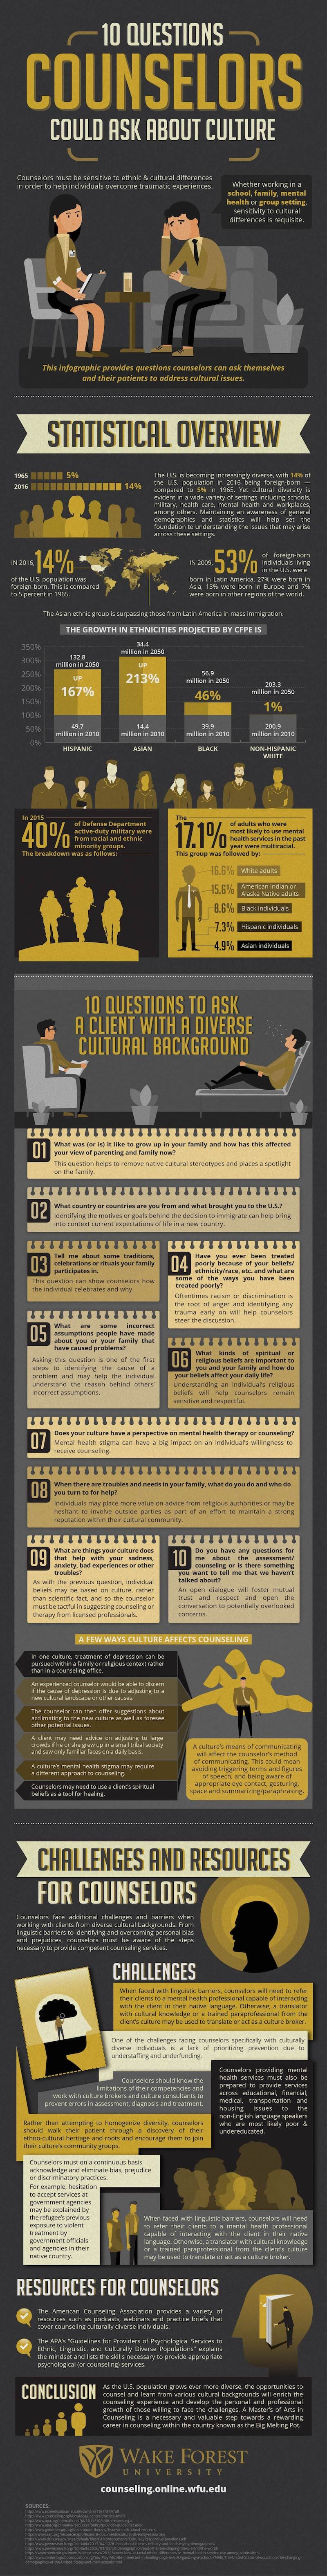 Infographic including 10 Questions Counselors Could Ask About Culture